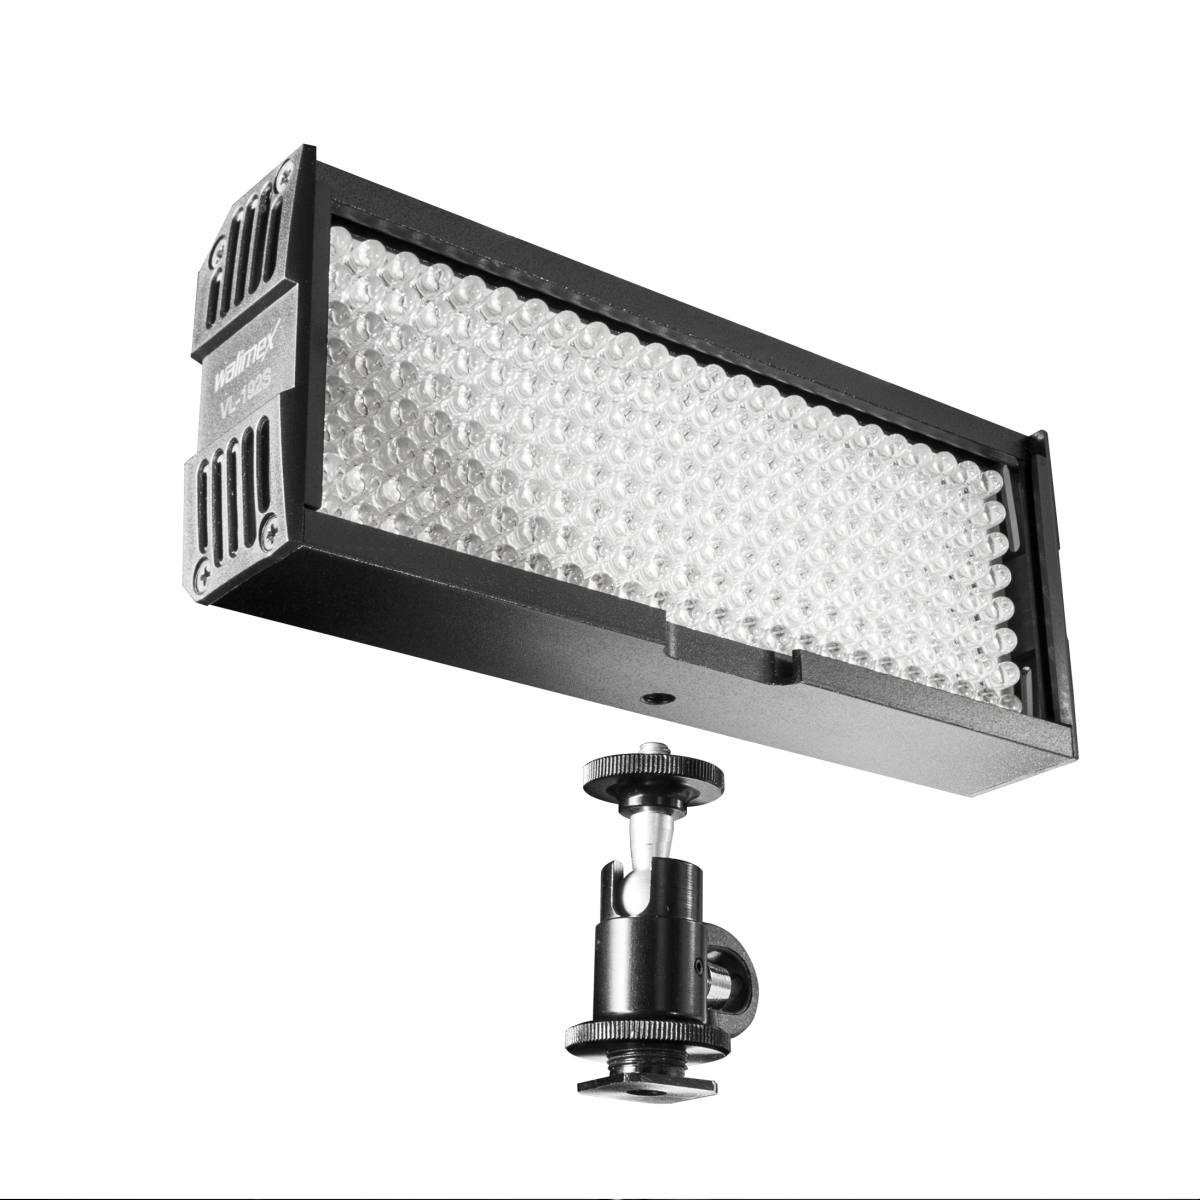 Walimex pro LED Foto Video Leuchte 192 Daylight